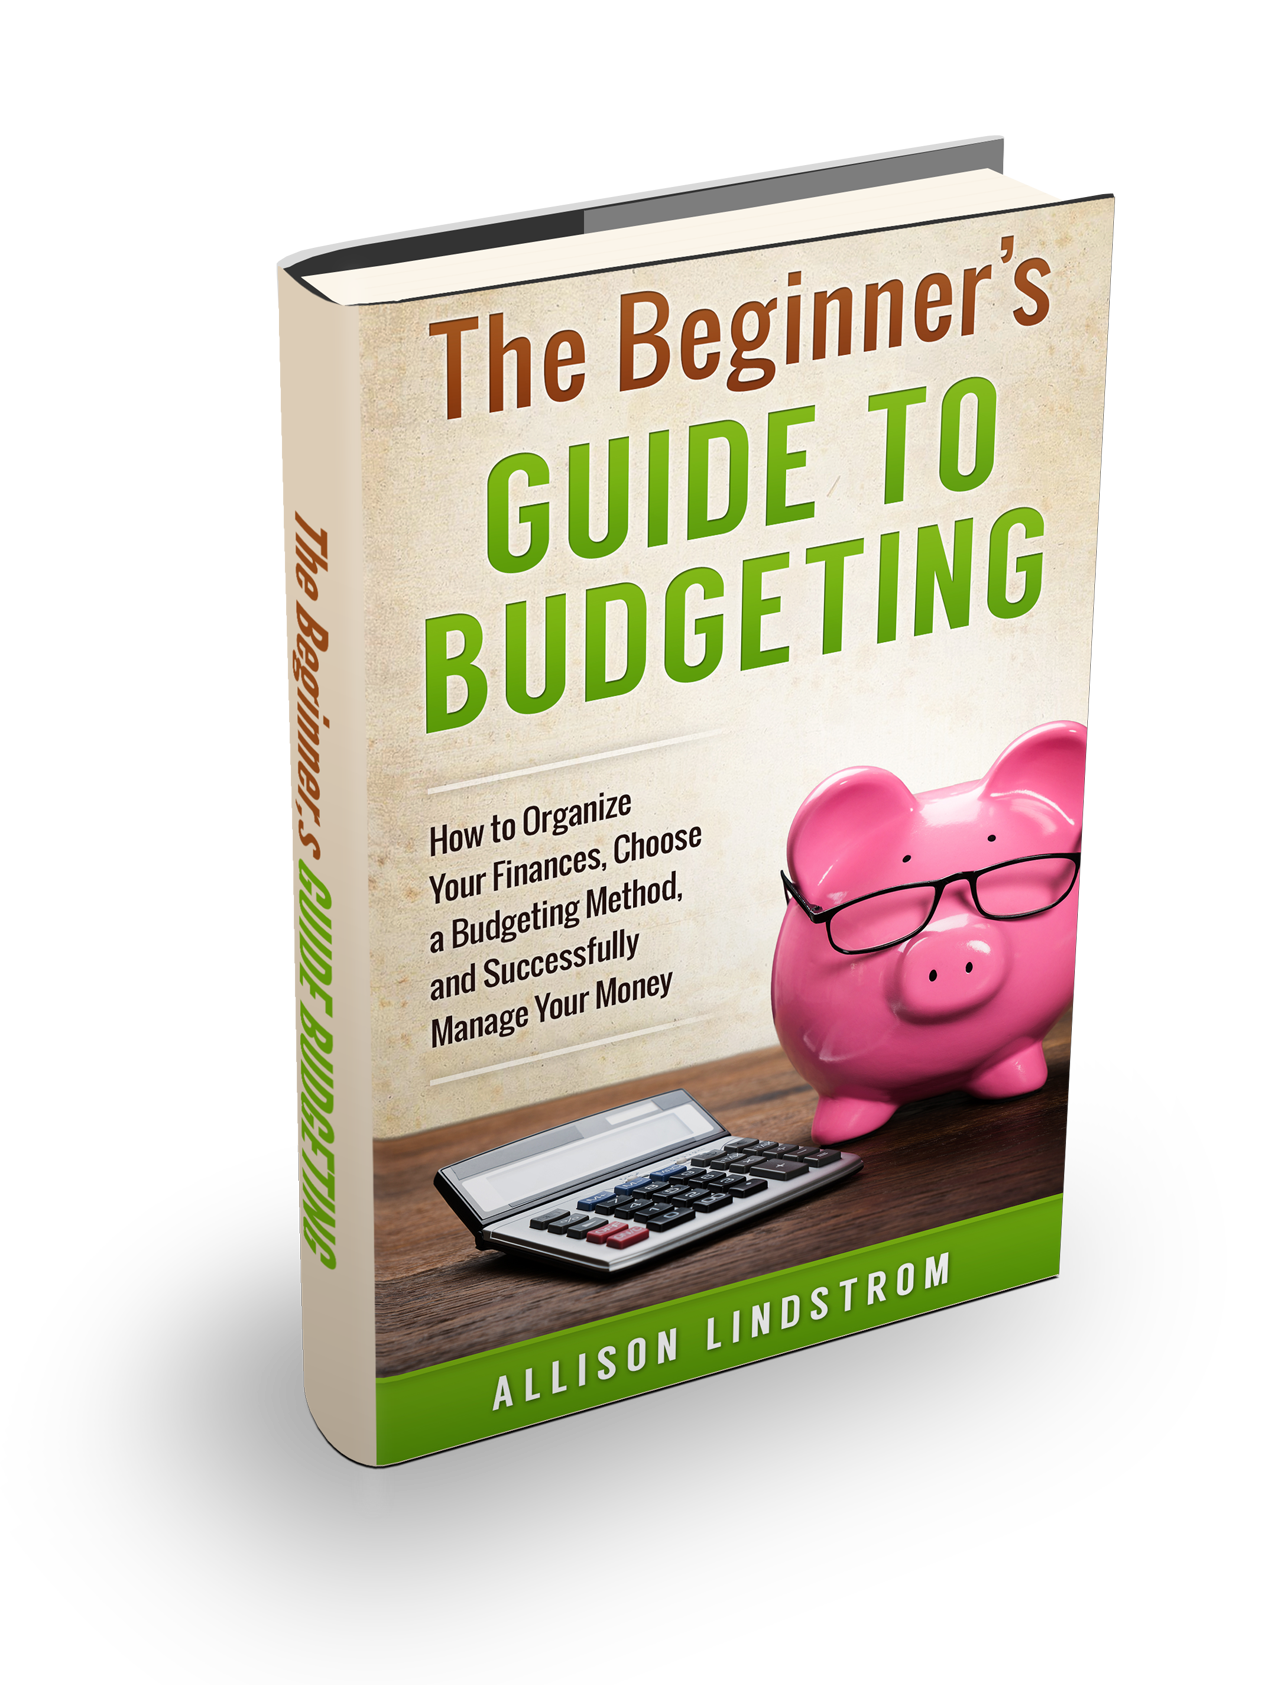 Looking for a go-to guide to help you with budgeting? The Beginner's Guide to Budgeting will help you with personal finance and saving money.